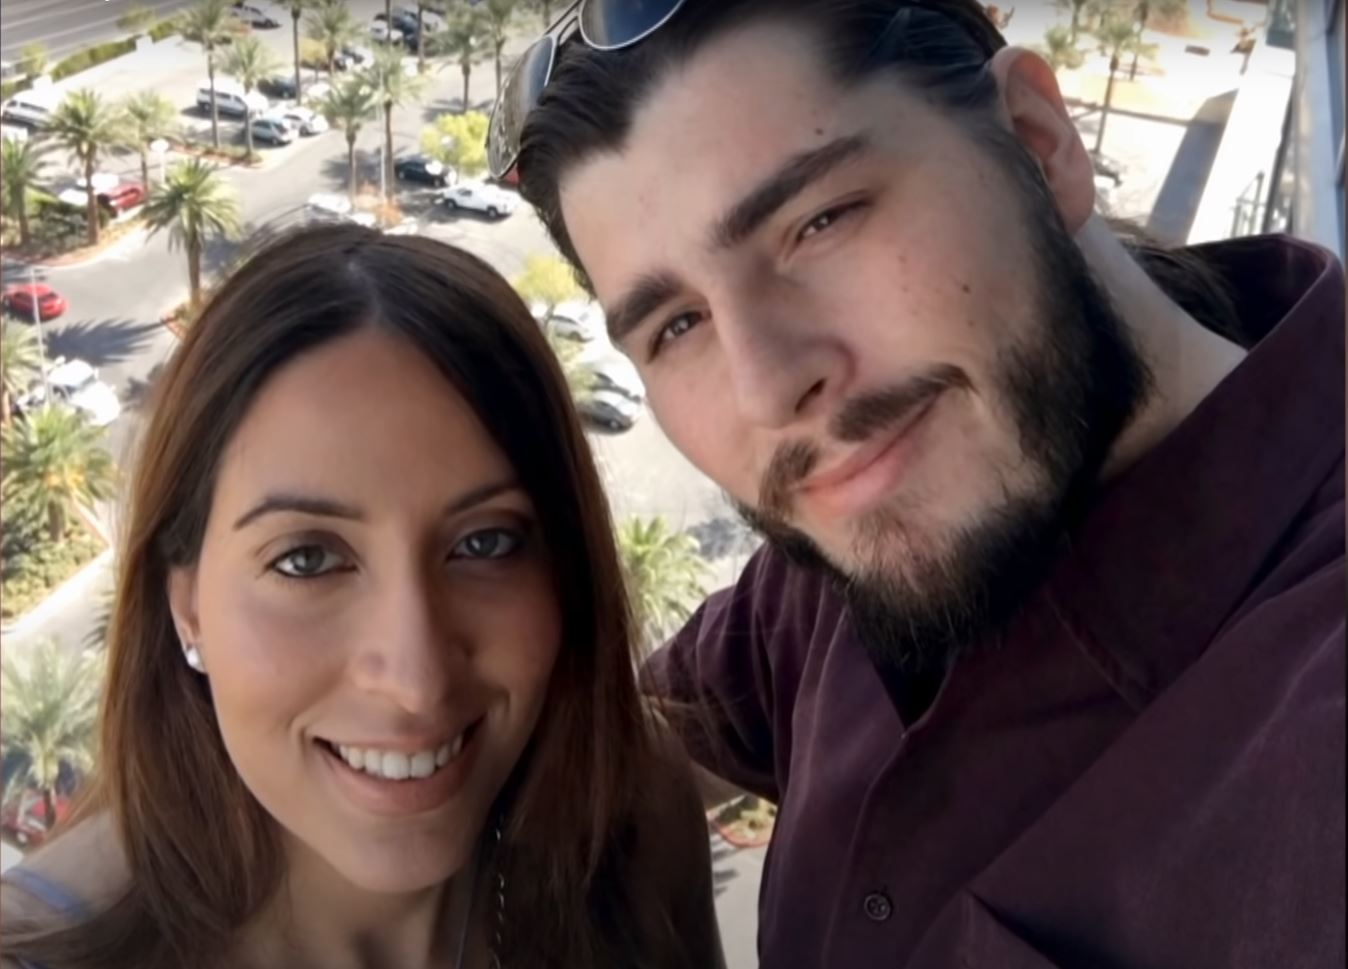 Amira and Andrew from '90 Day Fiancé'